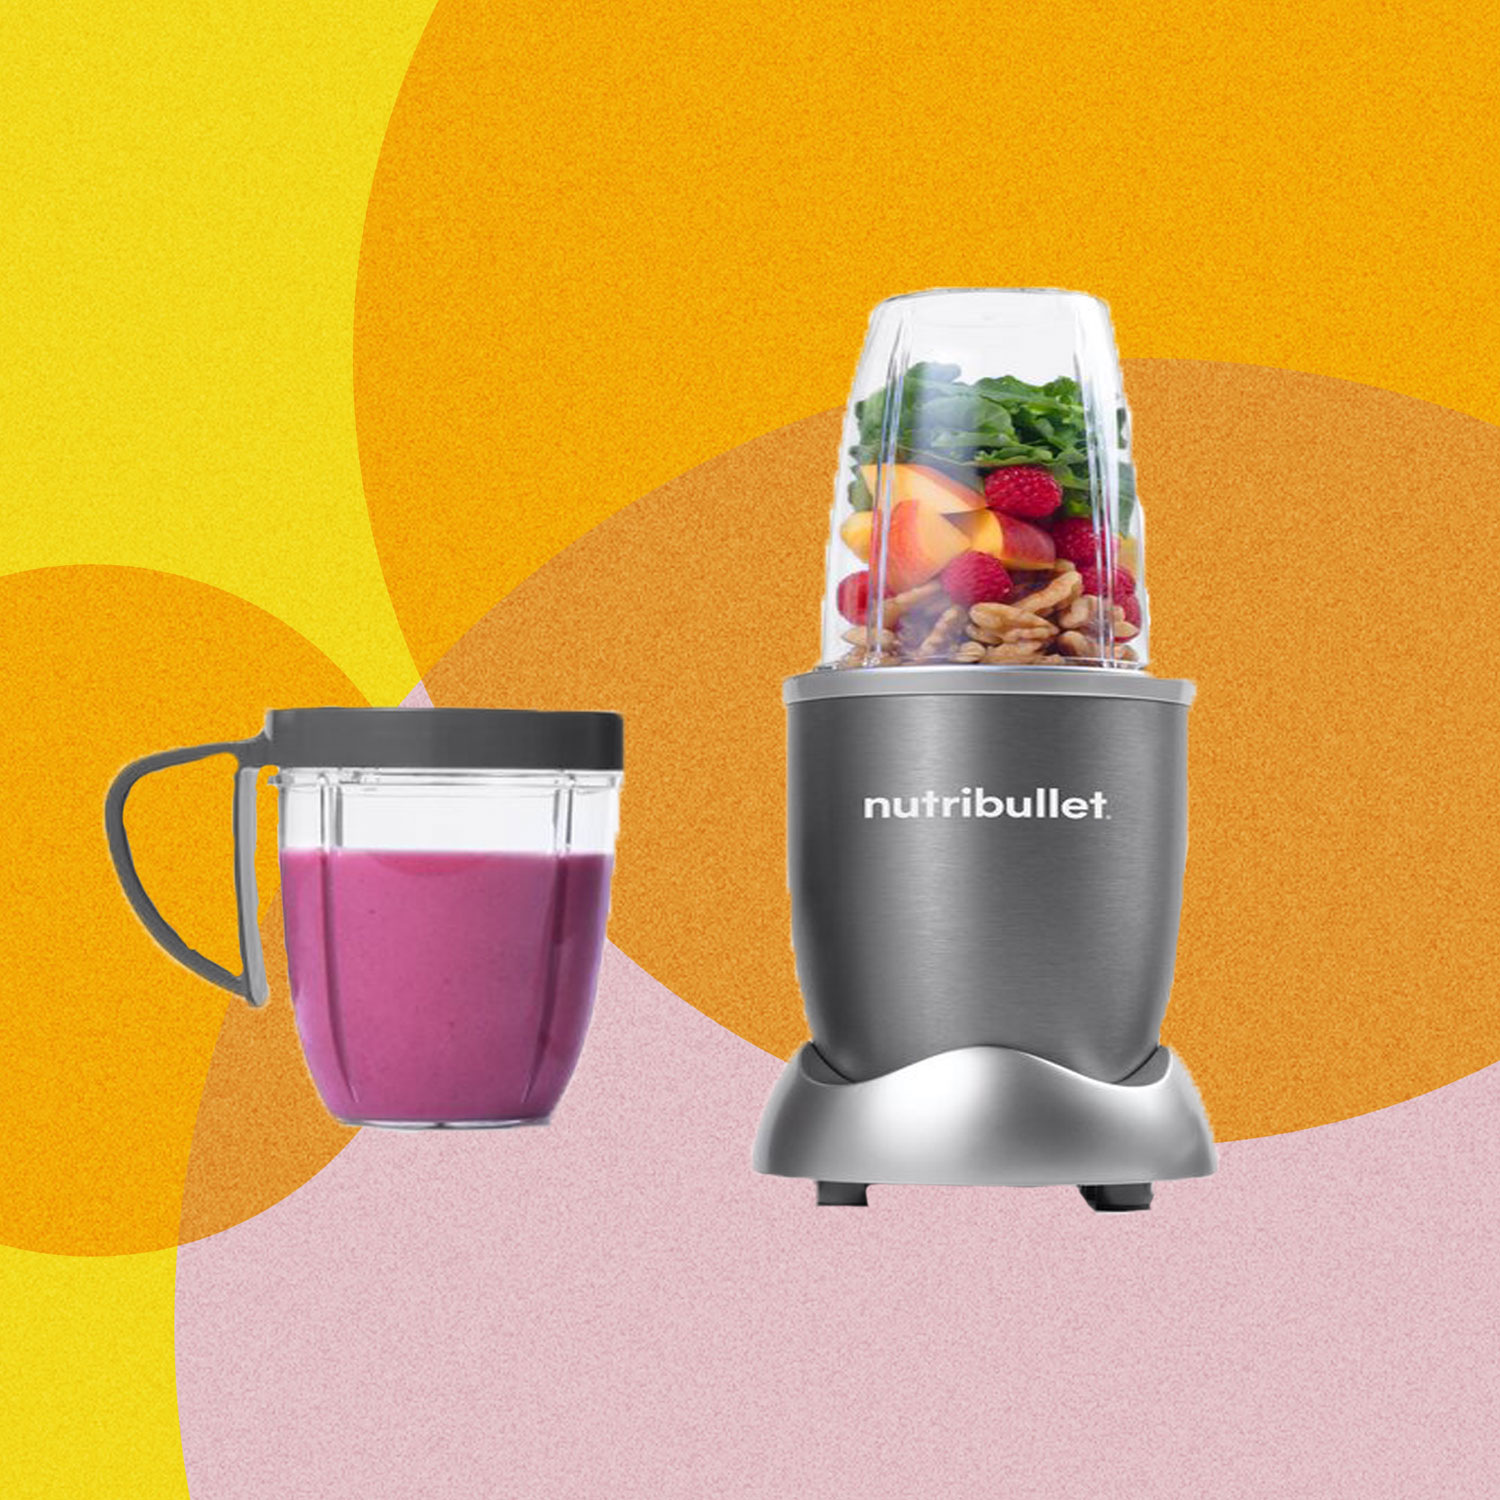 This NutriBullet Is Perfect for Making Smoothies—and It's Over 40% Off Right Now